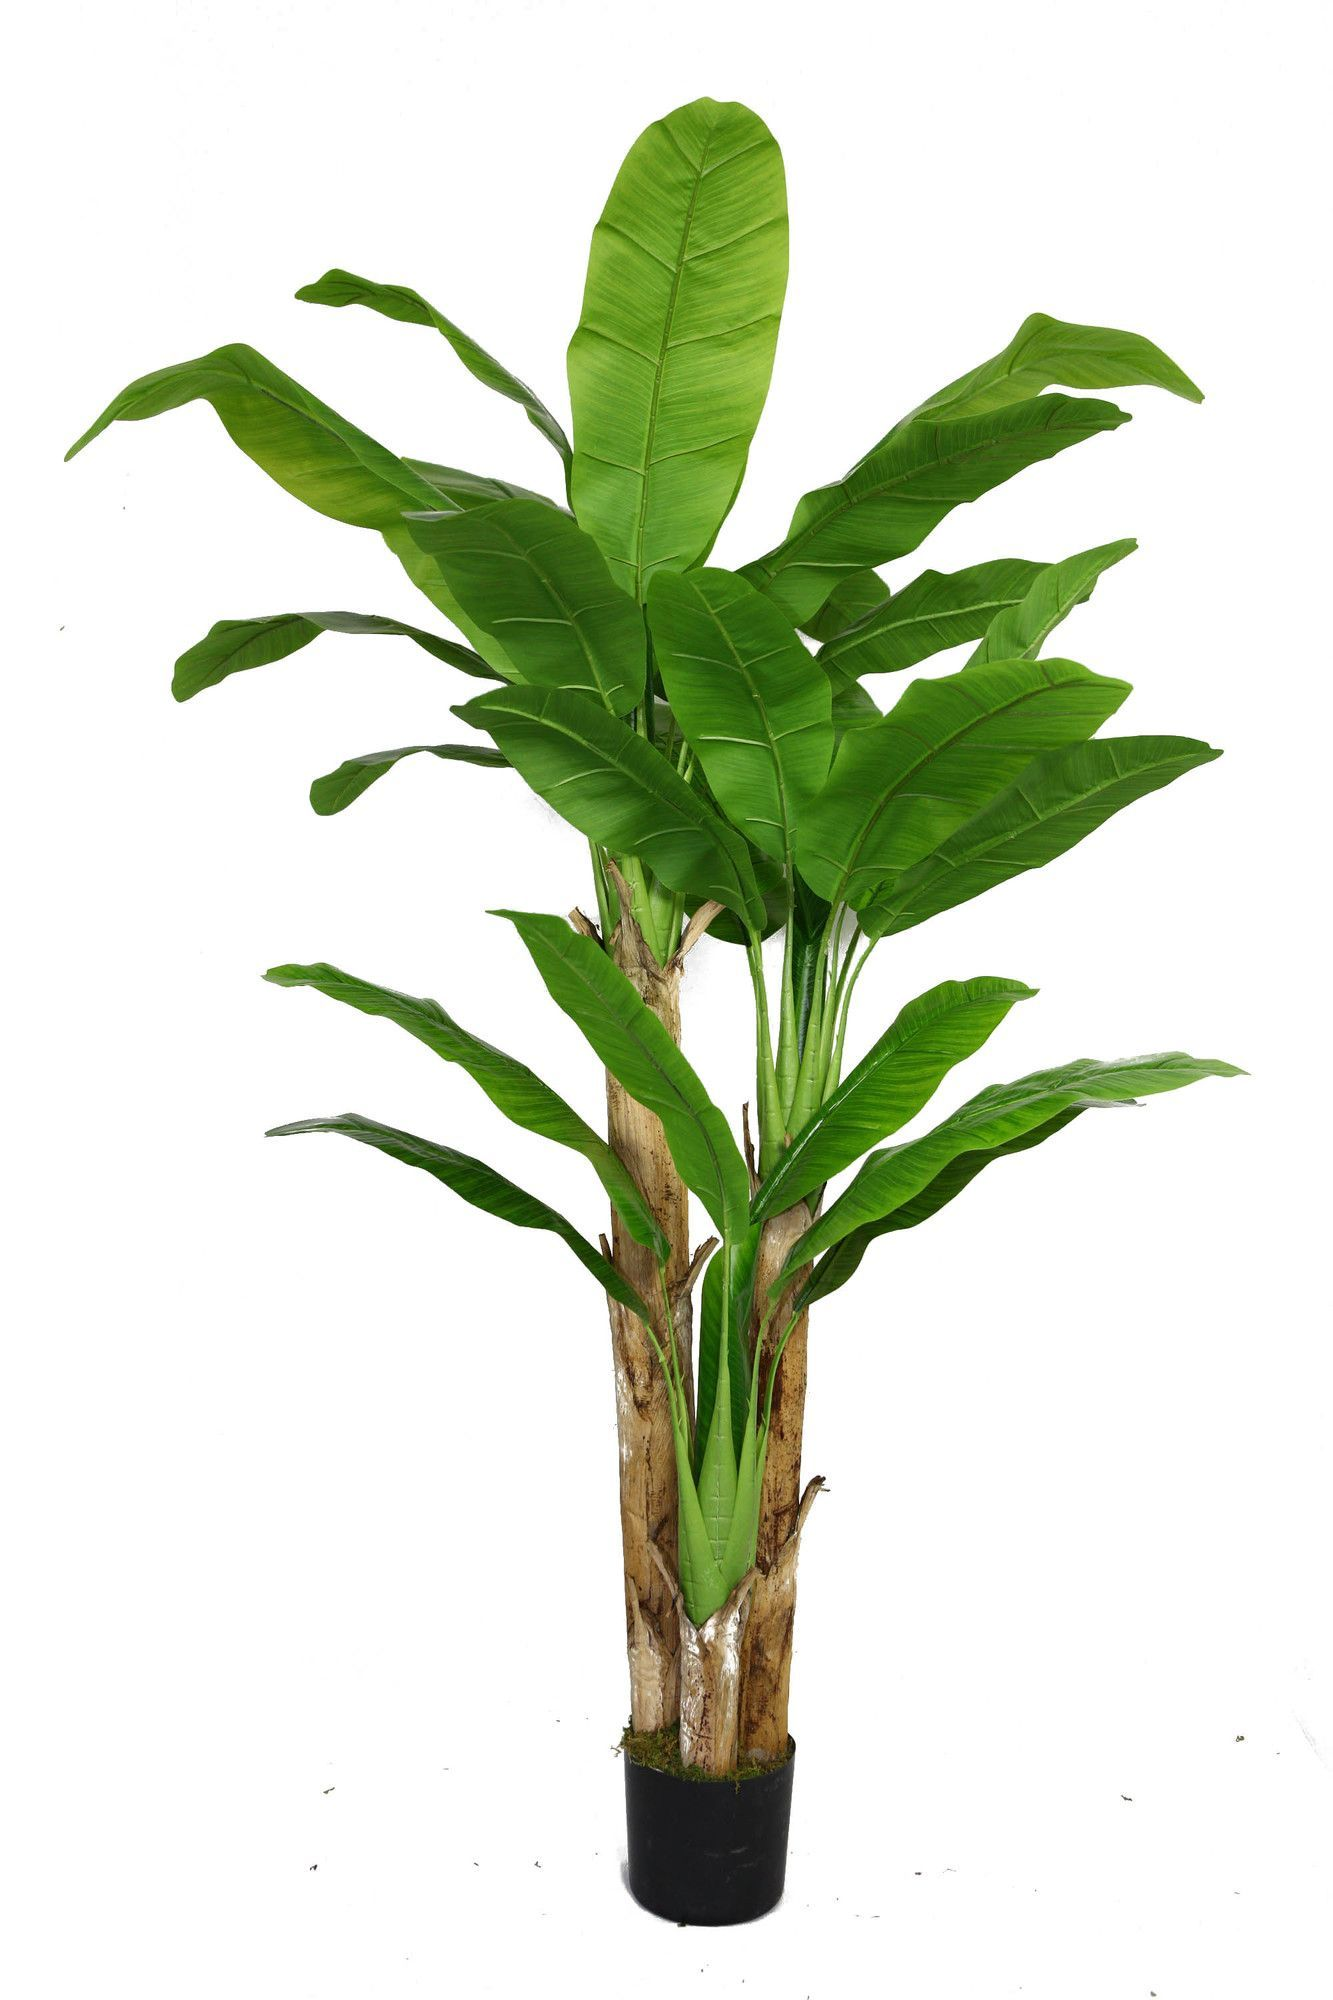 Top view plants 02 2d plant entourage for architecture - Features With Real Touch Leaves No Need To Shop For A Planter